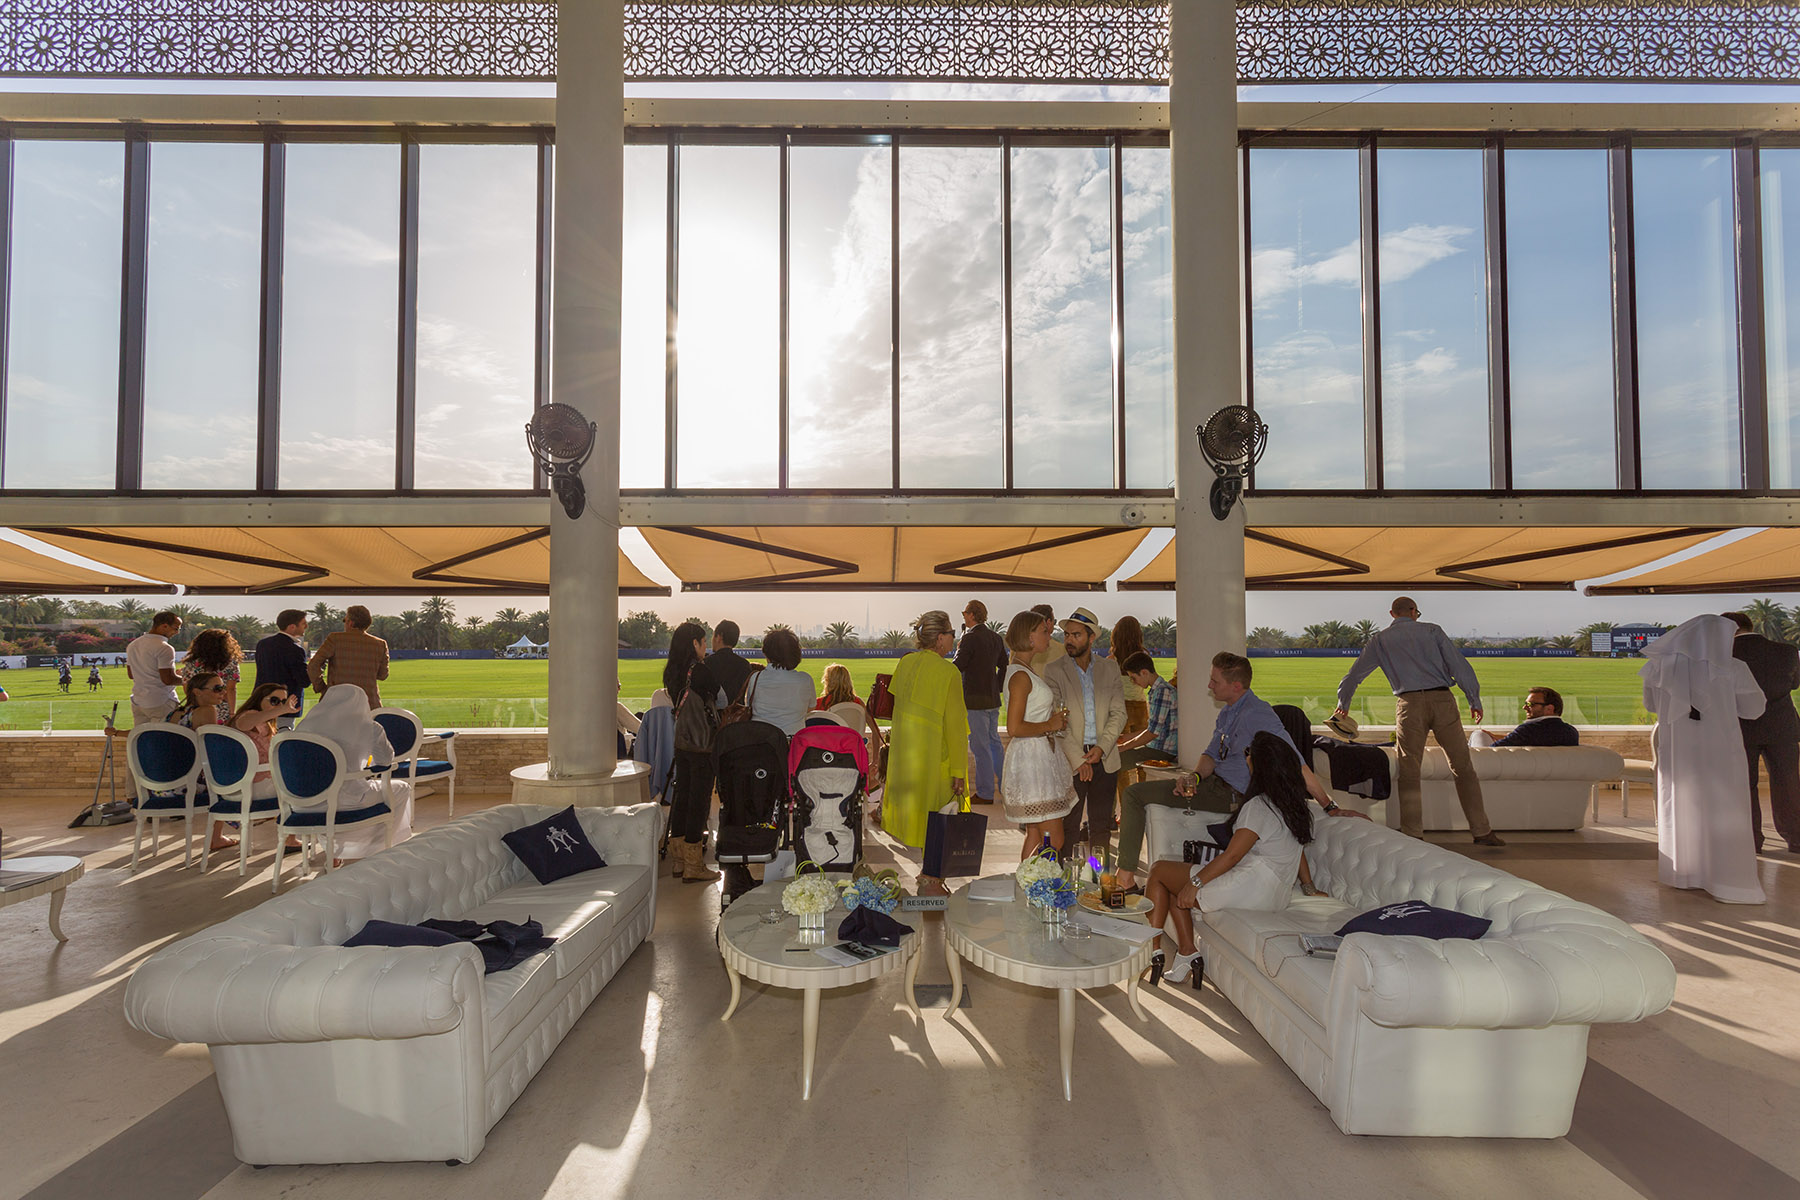 Guests watching the game at the Maserati Polo event by Loesje Kessels Fashion Photographer Dubai